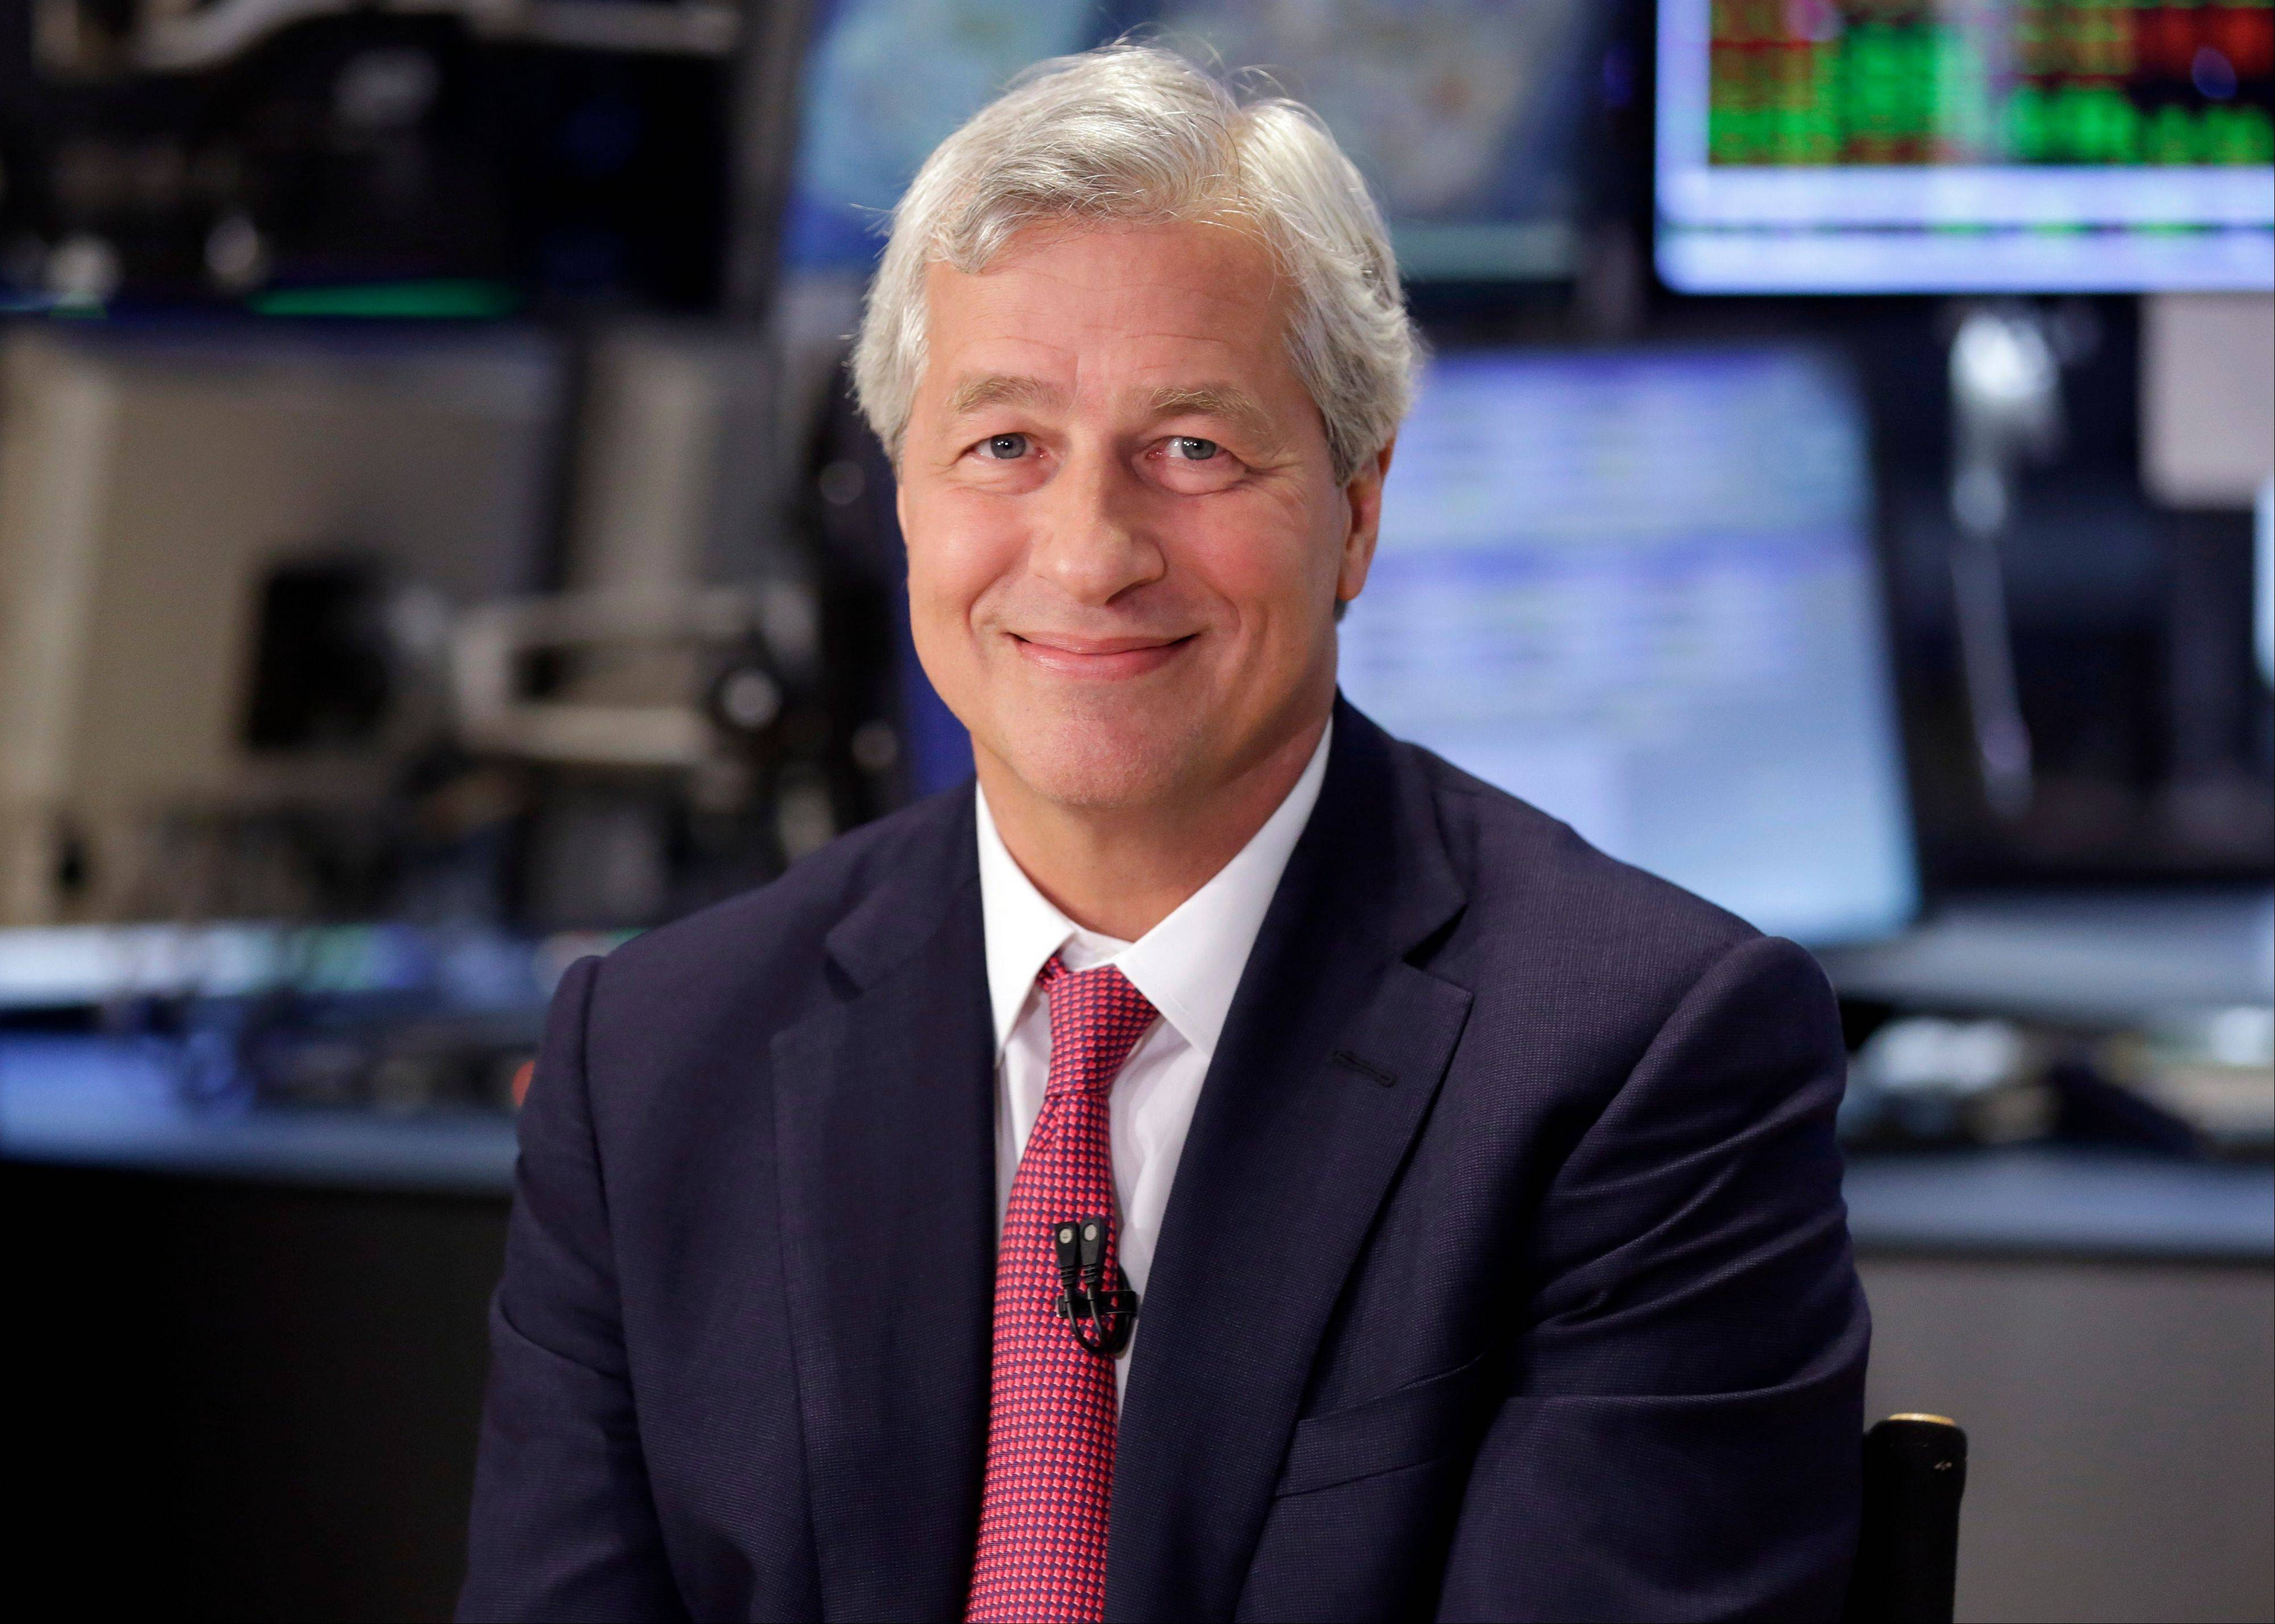 JPMorgan Chase Chairman and CEO Jamie Dimon.